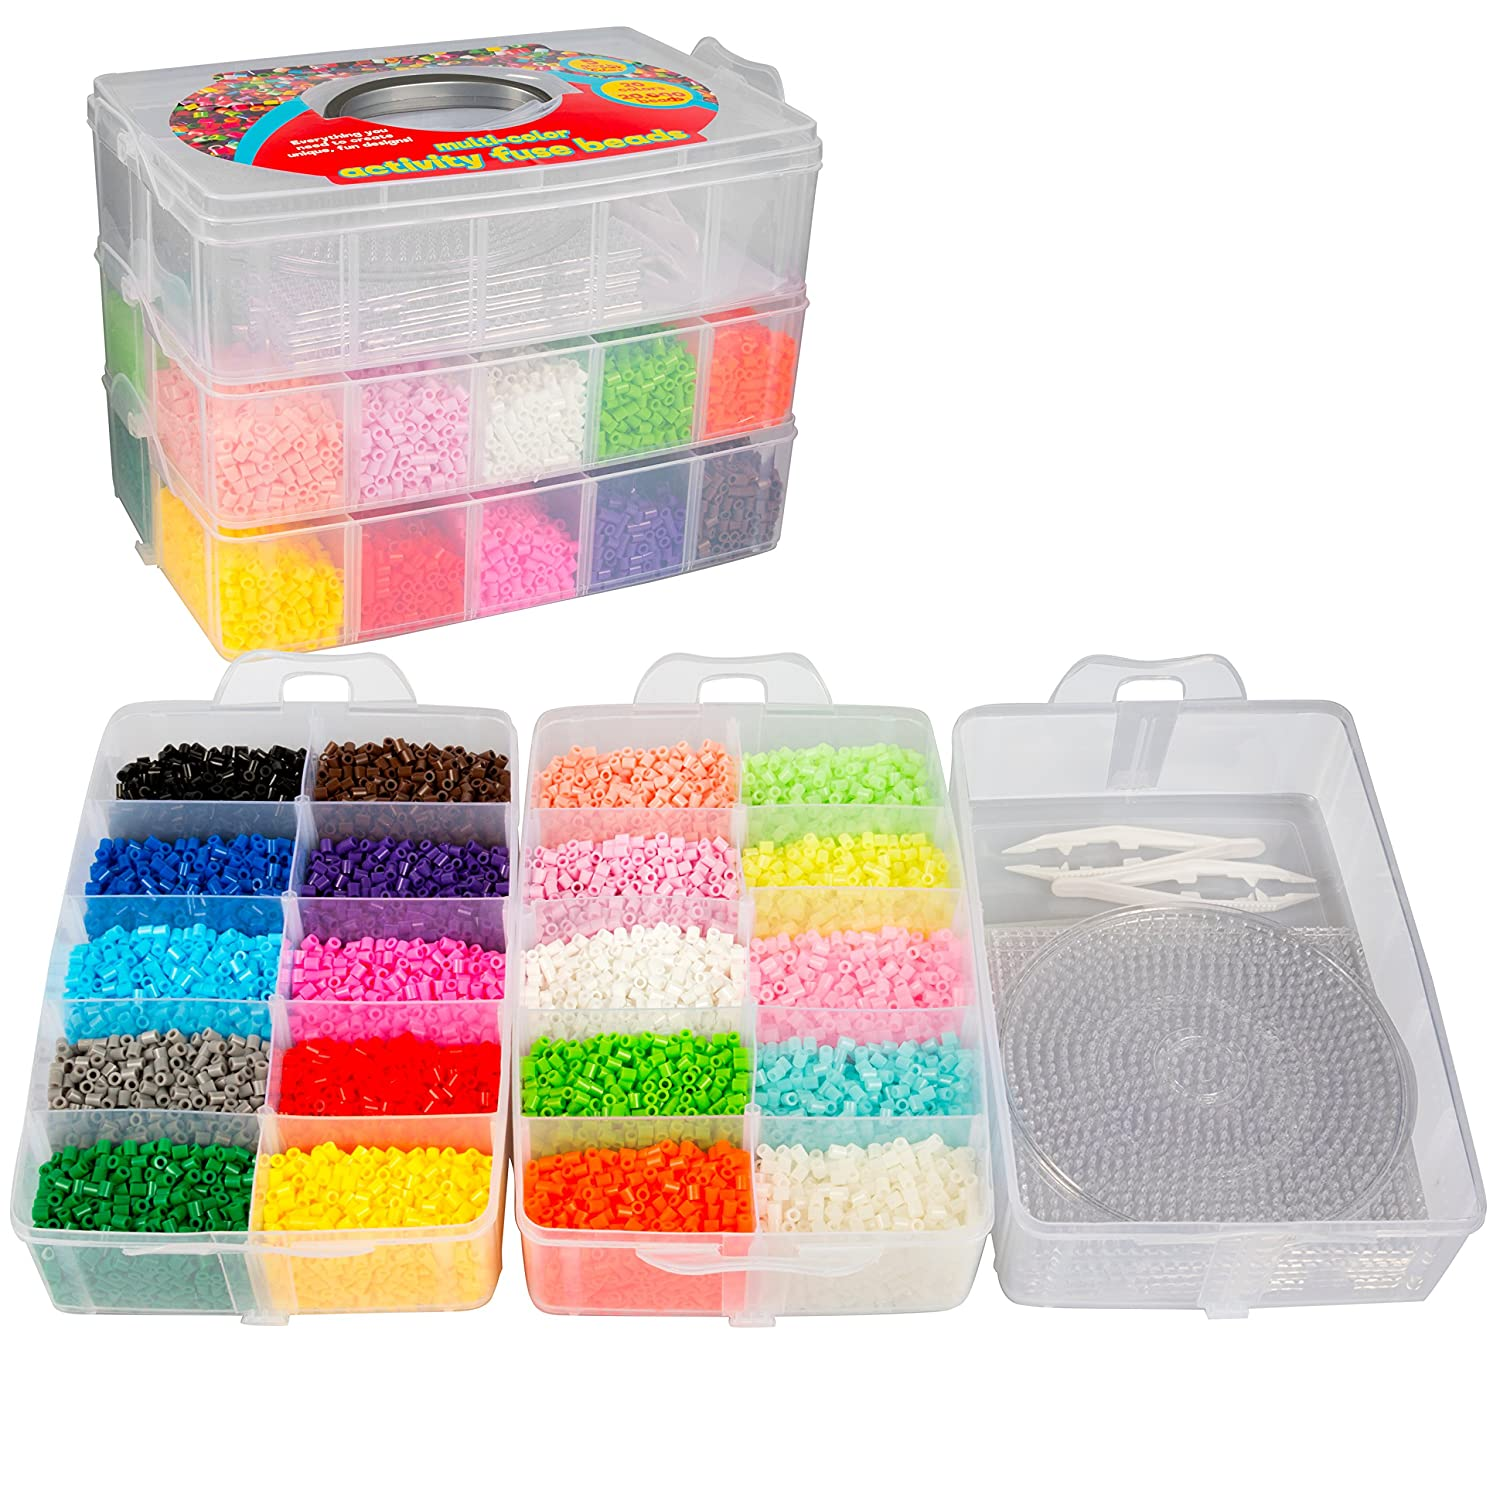 20,000 Fuse Beads - 20 colors 5 Glow in the Dark, Tweezers, Peg Boards, Ironing Paper, Case - Works with Perler Beads